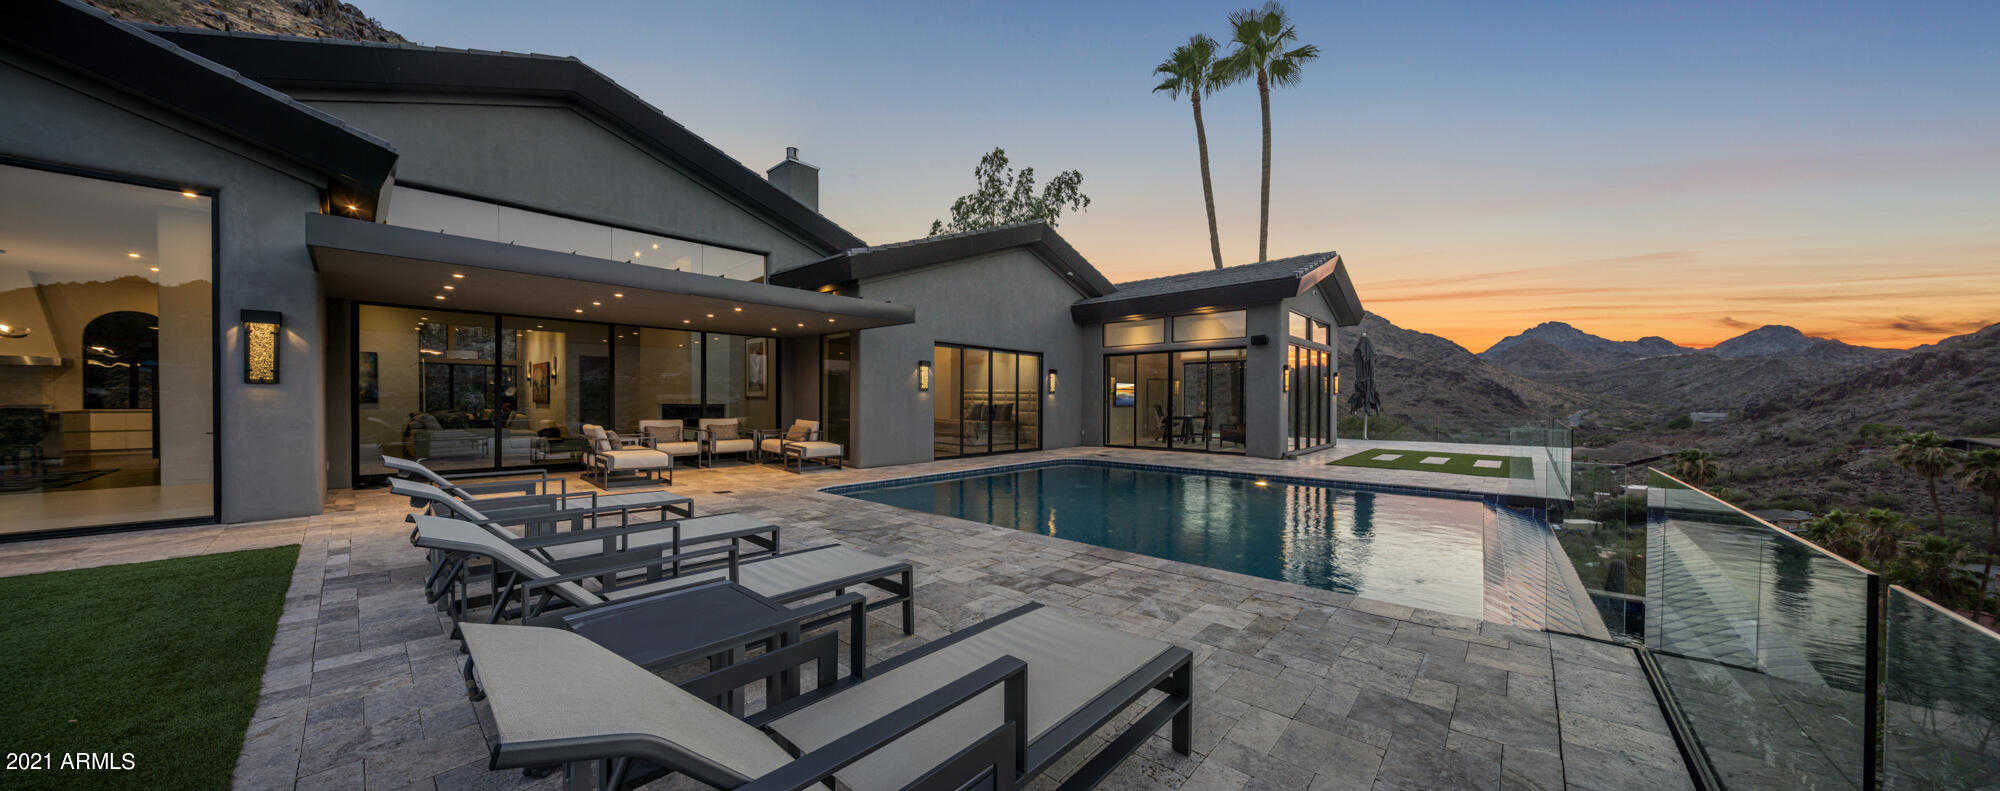 $5,995,000 - 4Br/5Ba - Home for Sale in Clearwater Hills 2 Private Roads, Paradise Valley